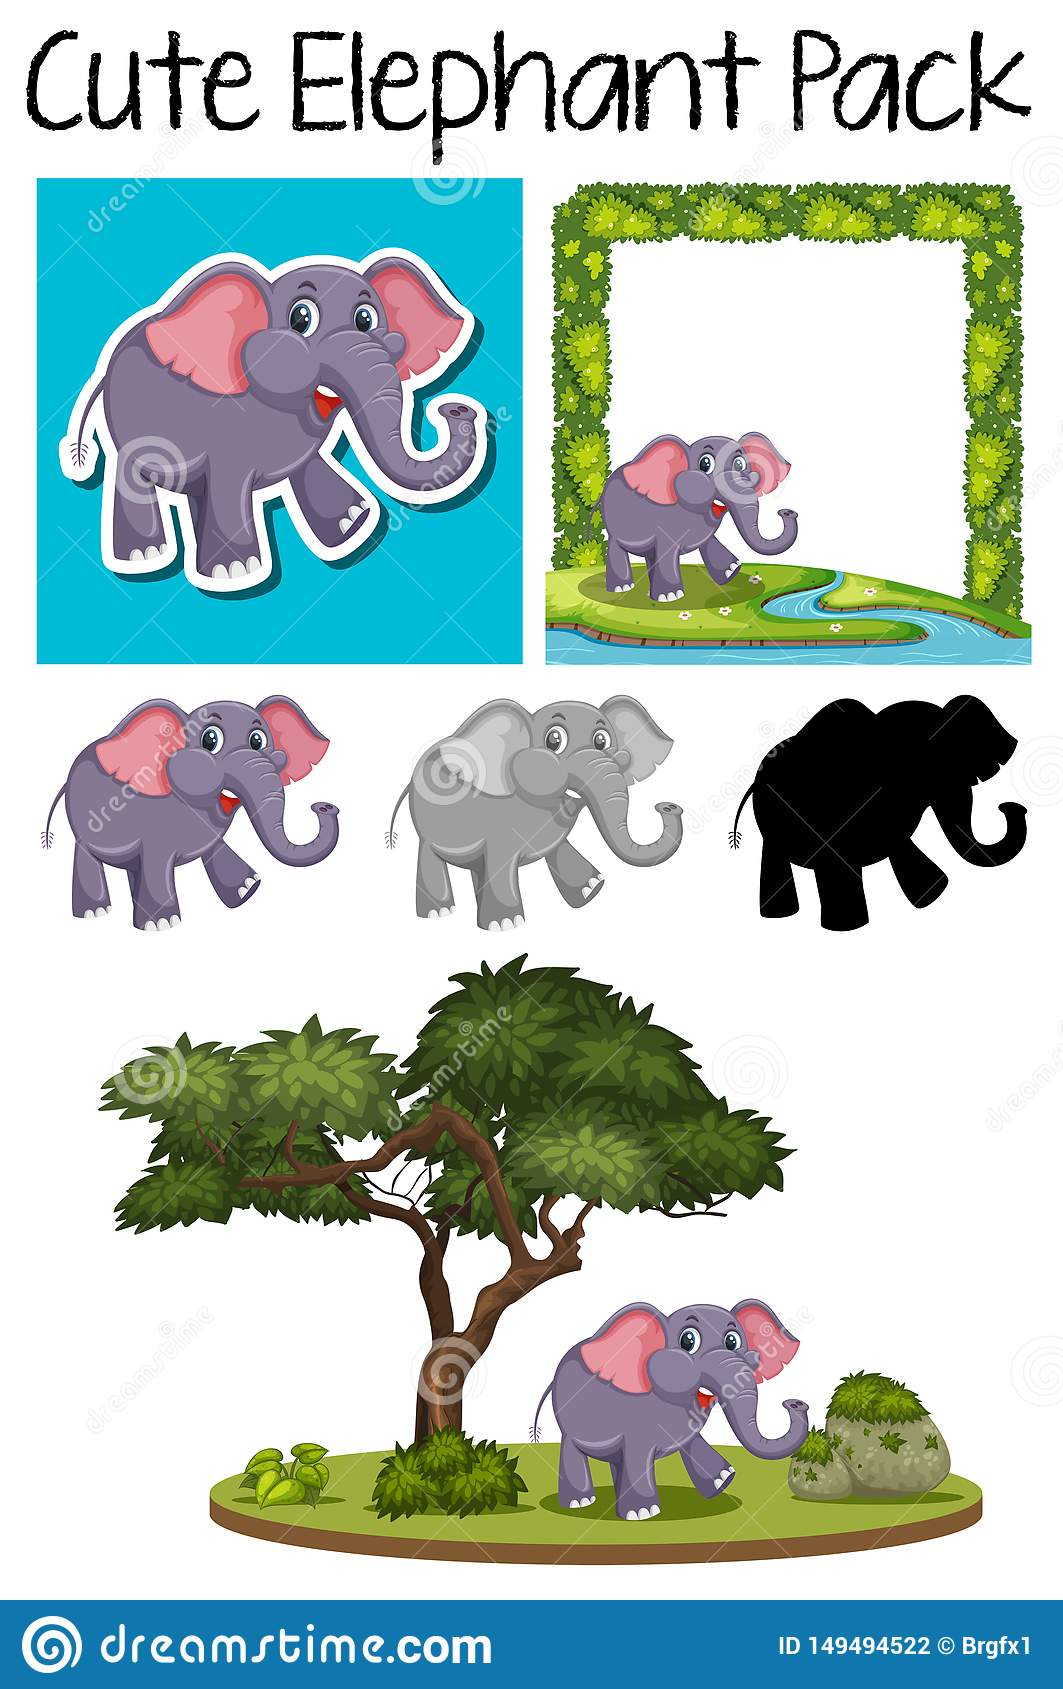 A pack of cute elephant stock vector. Illustration of ...